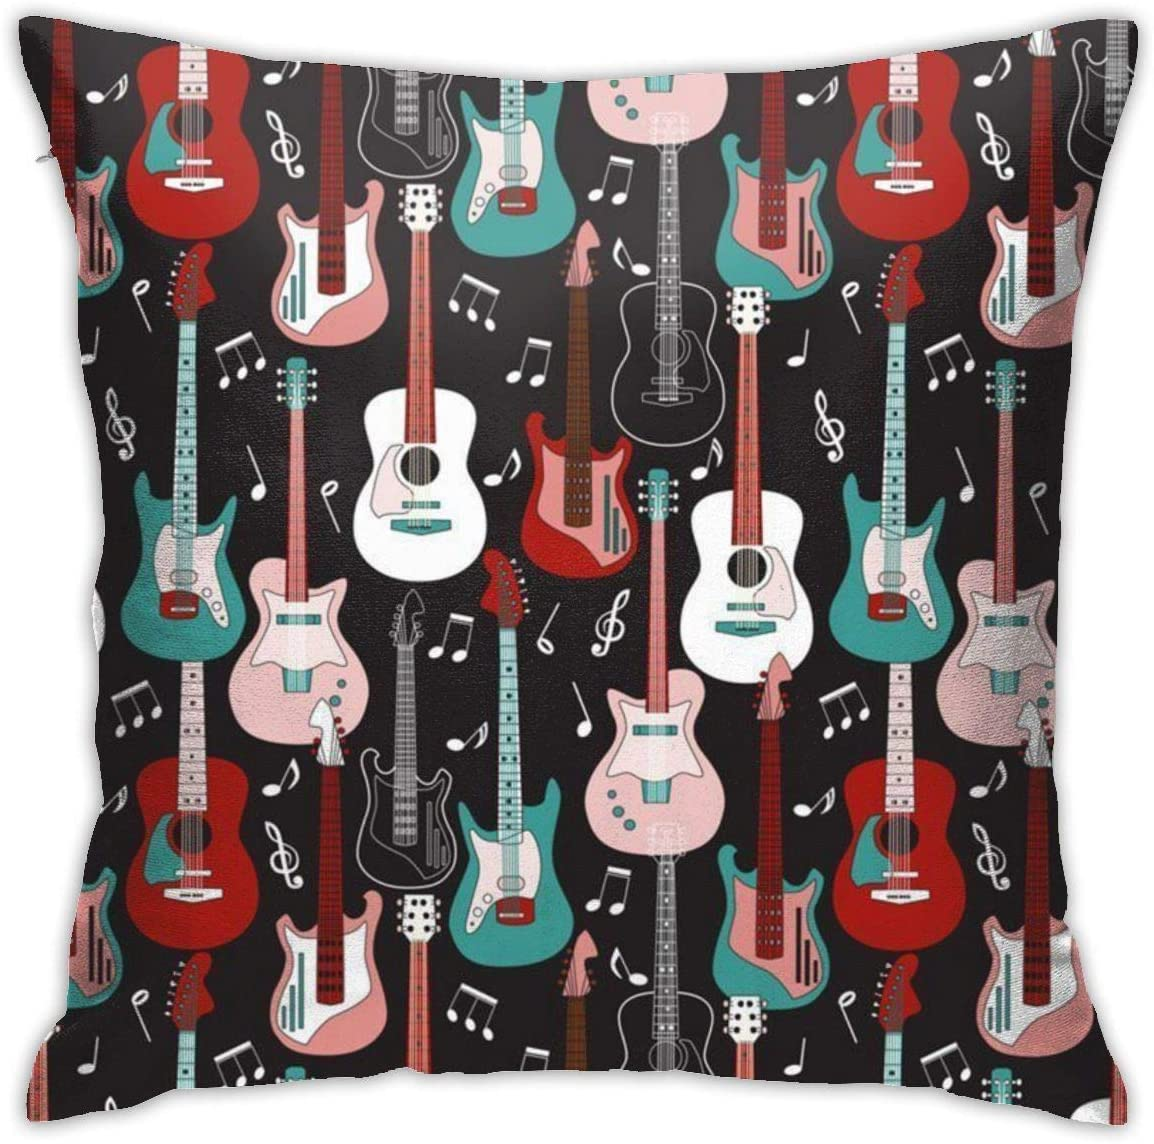 NiYoung Pillow Covers Pillowcase Decorative Soft Square Pillow Decorative Cushion Cover Pillow Cover for Sofa Couch Bed Chair, 18x18 inch (Rock and Roll Guitars)